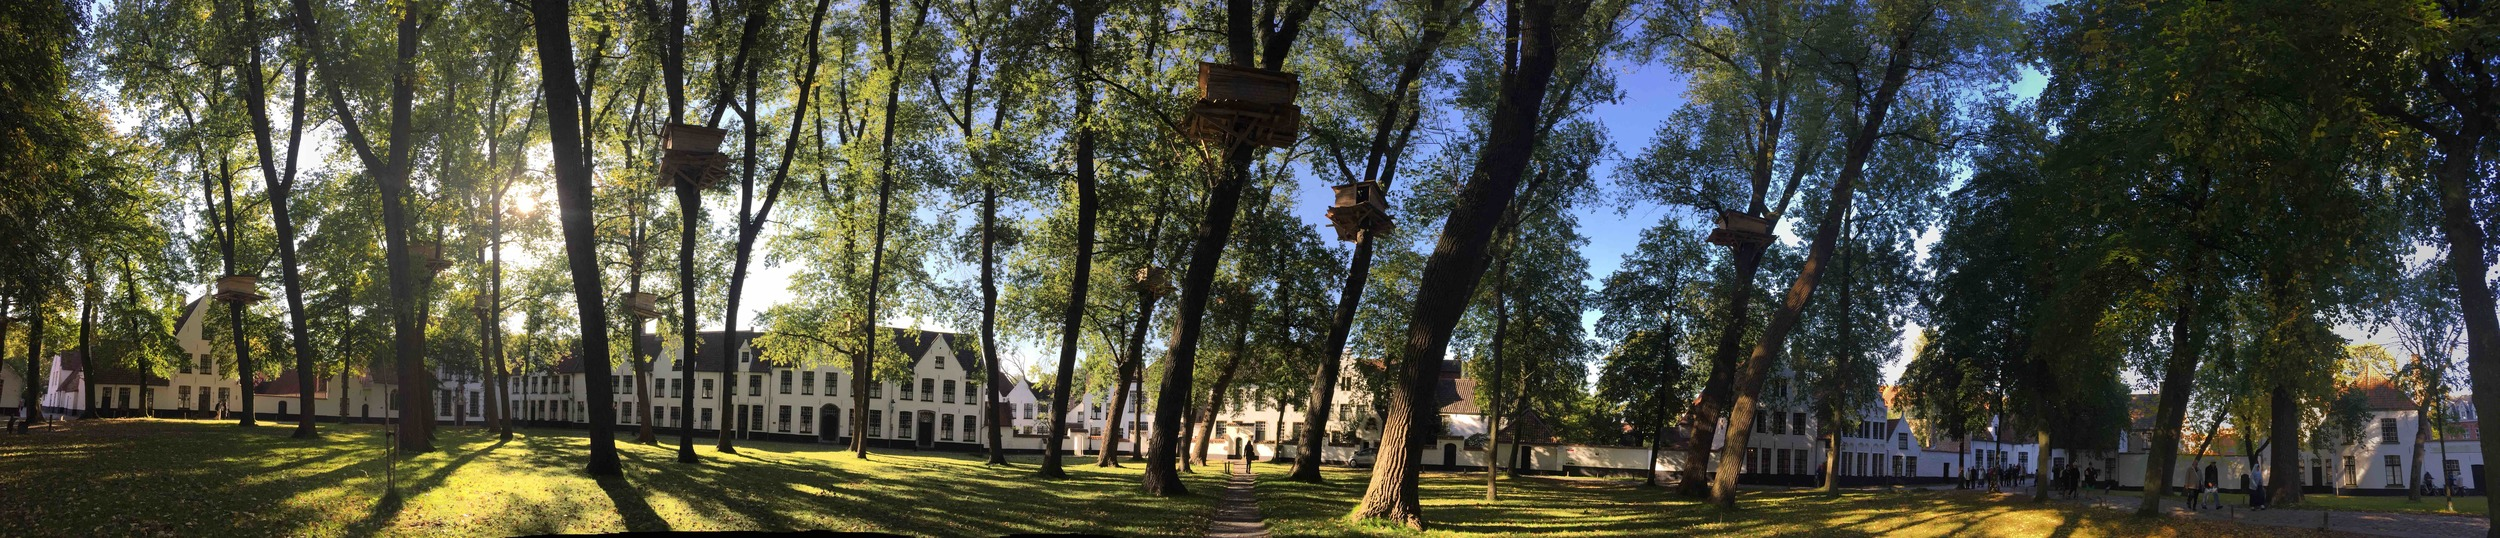 """""""Tree Huts in Bruges"""", an installation by Tadashi Kawamata in the Beguinage for the Bruges Triennale 2015"""